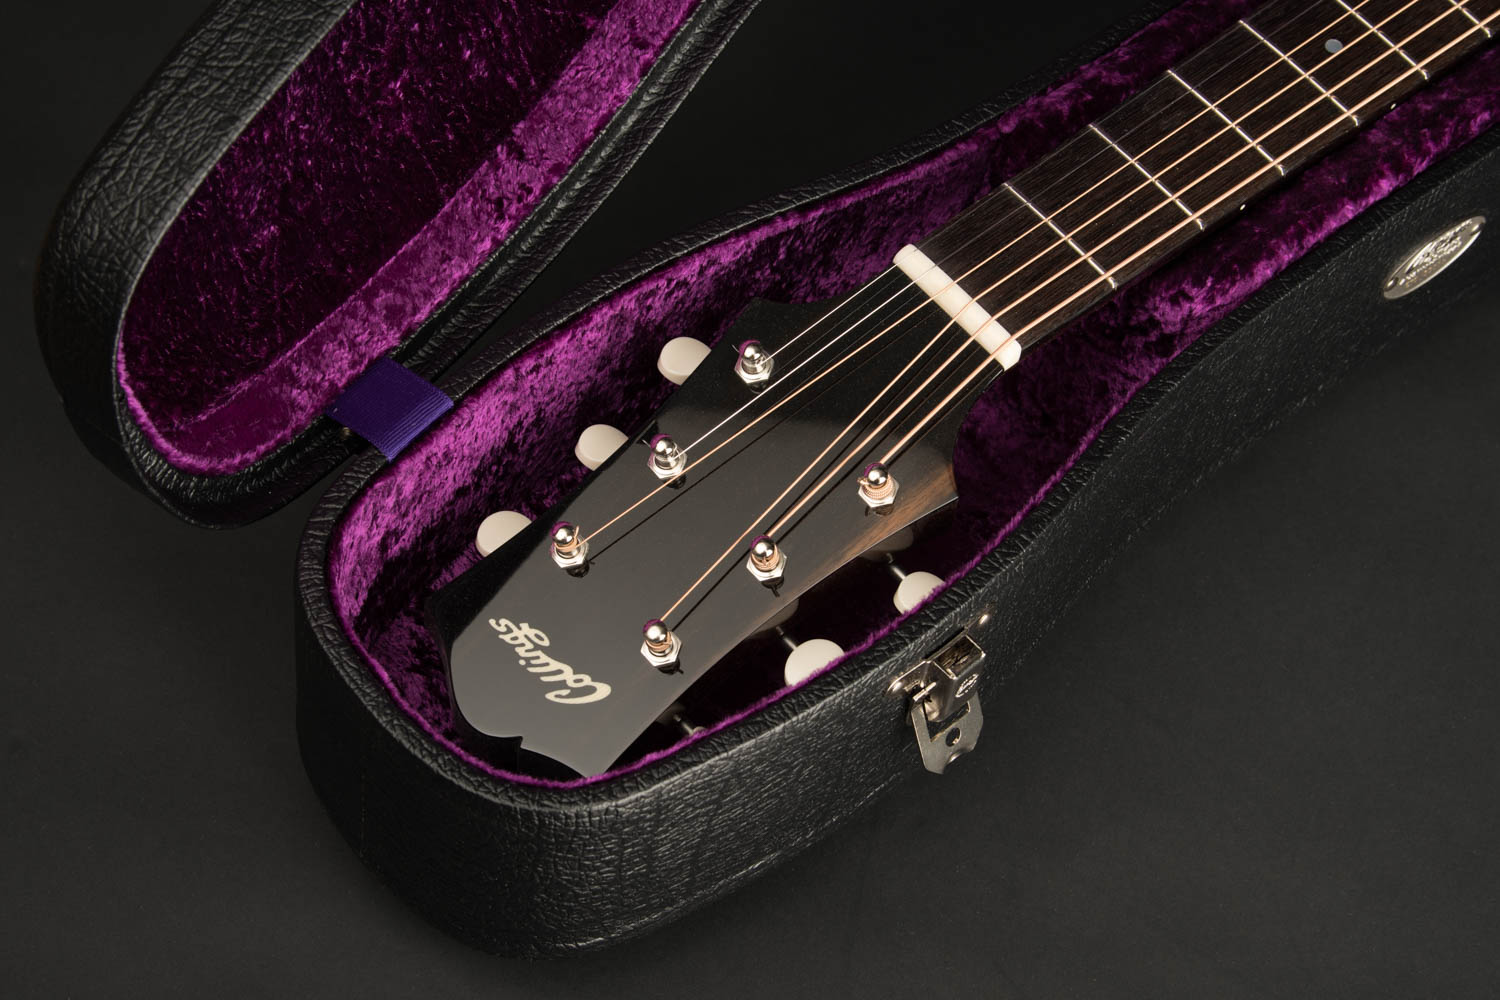 Collings Cases Original Vintage Inspired Guitar And